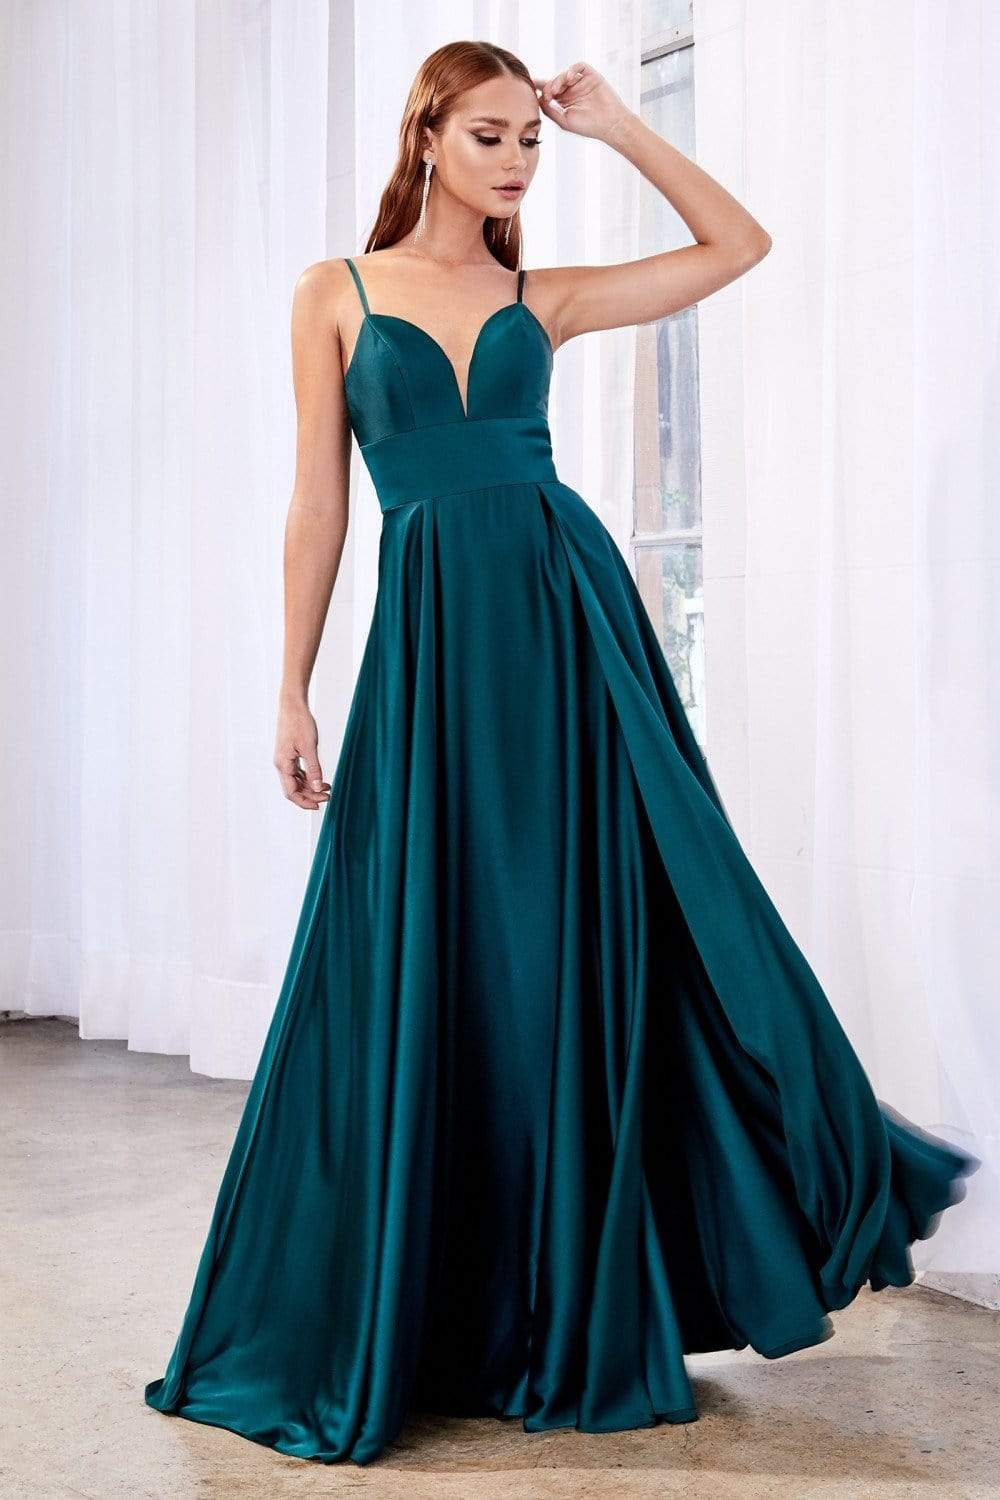 Cinderella Divine - CJ526SC Plunging Neck Satin Gown